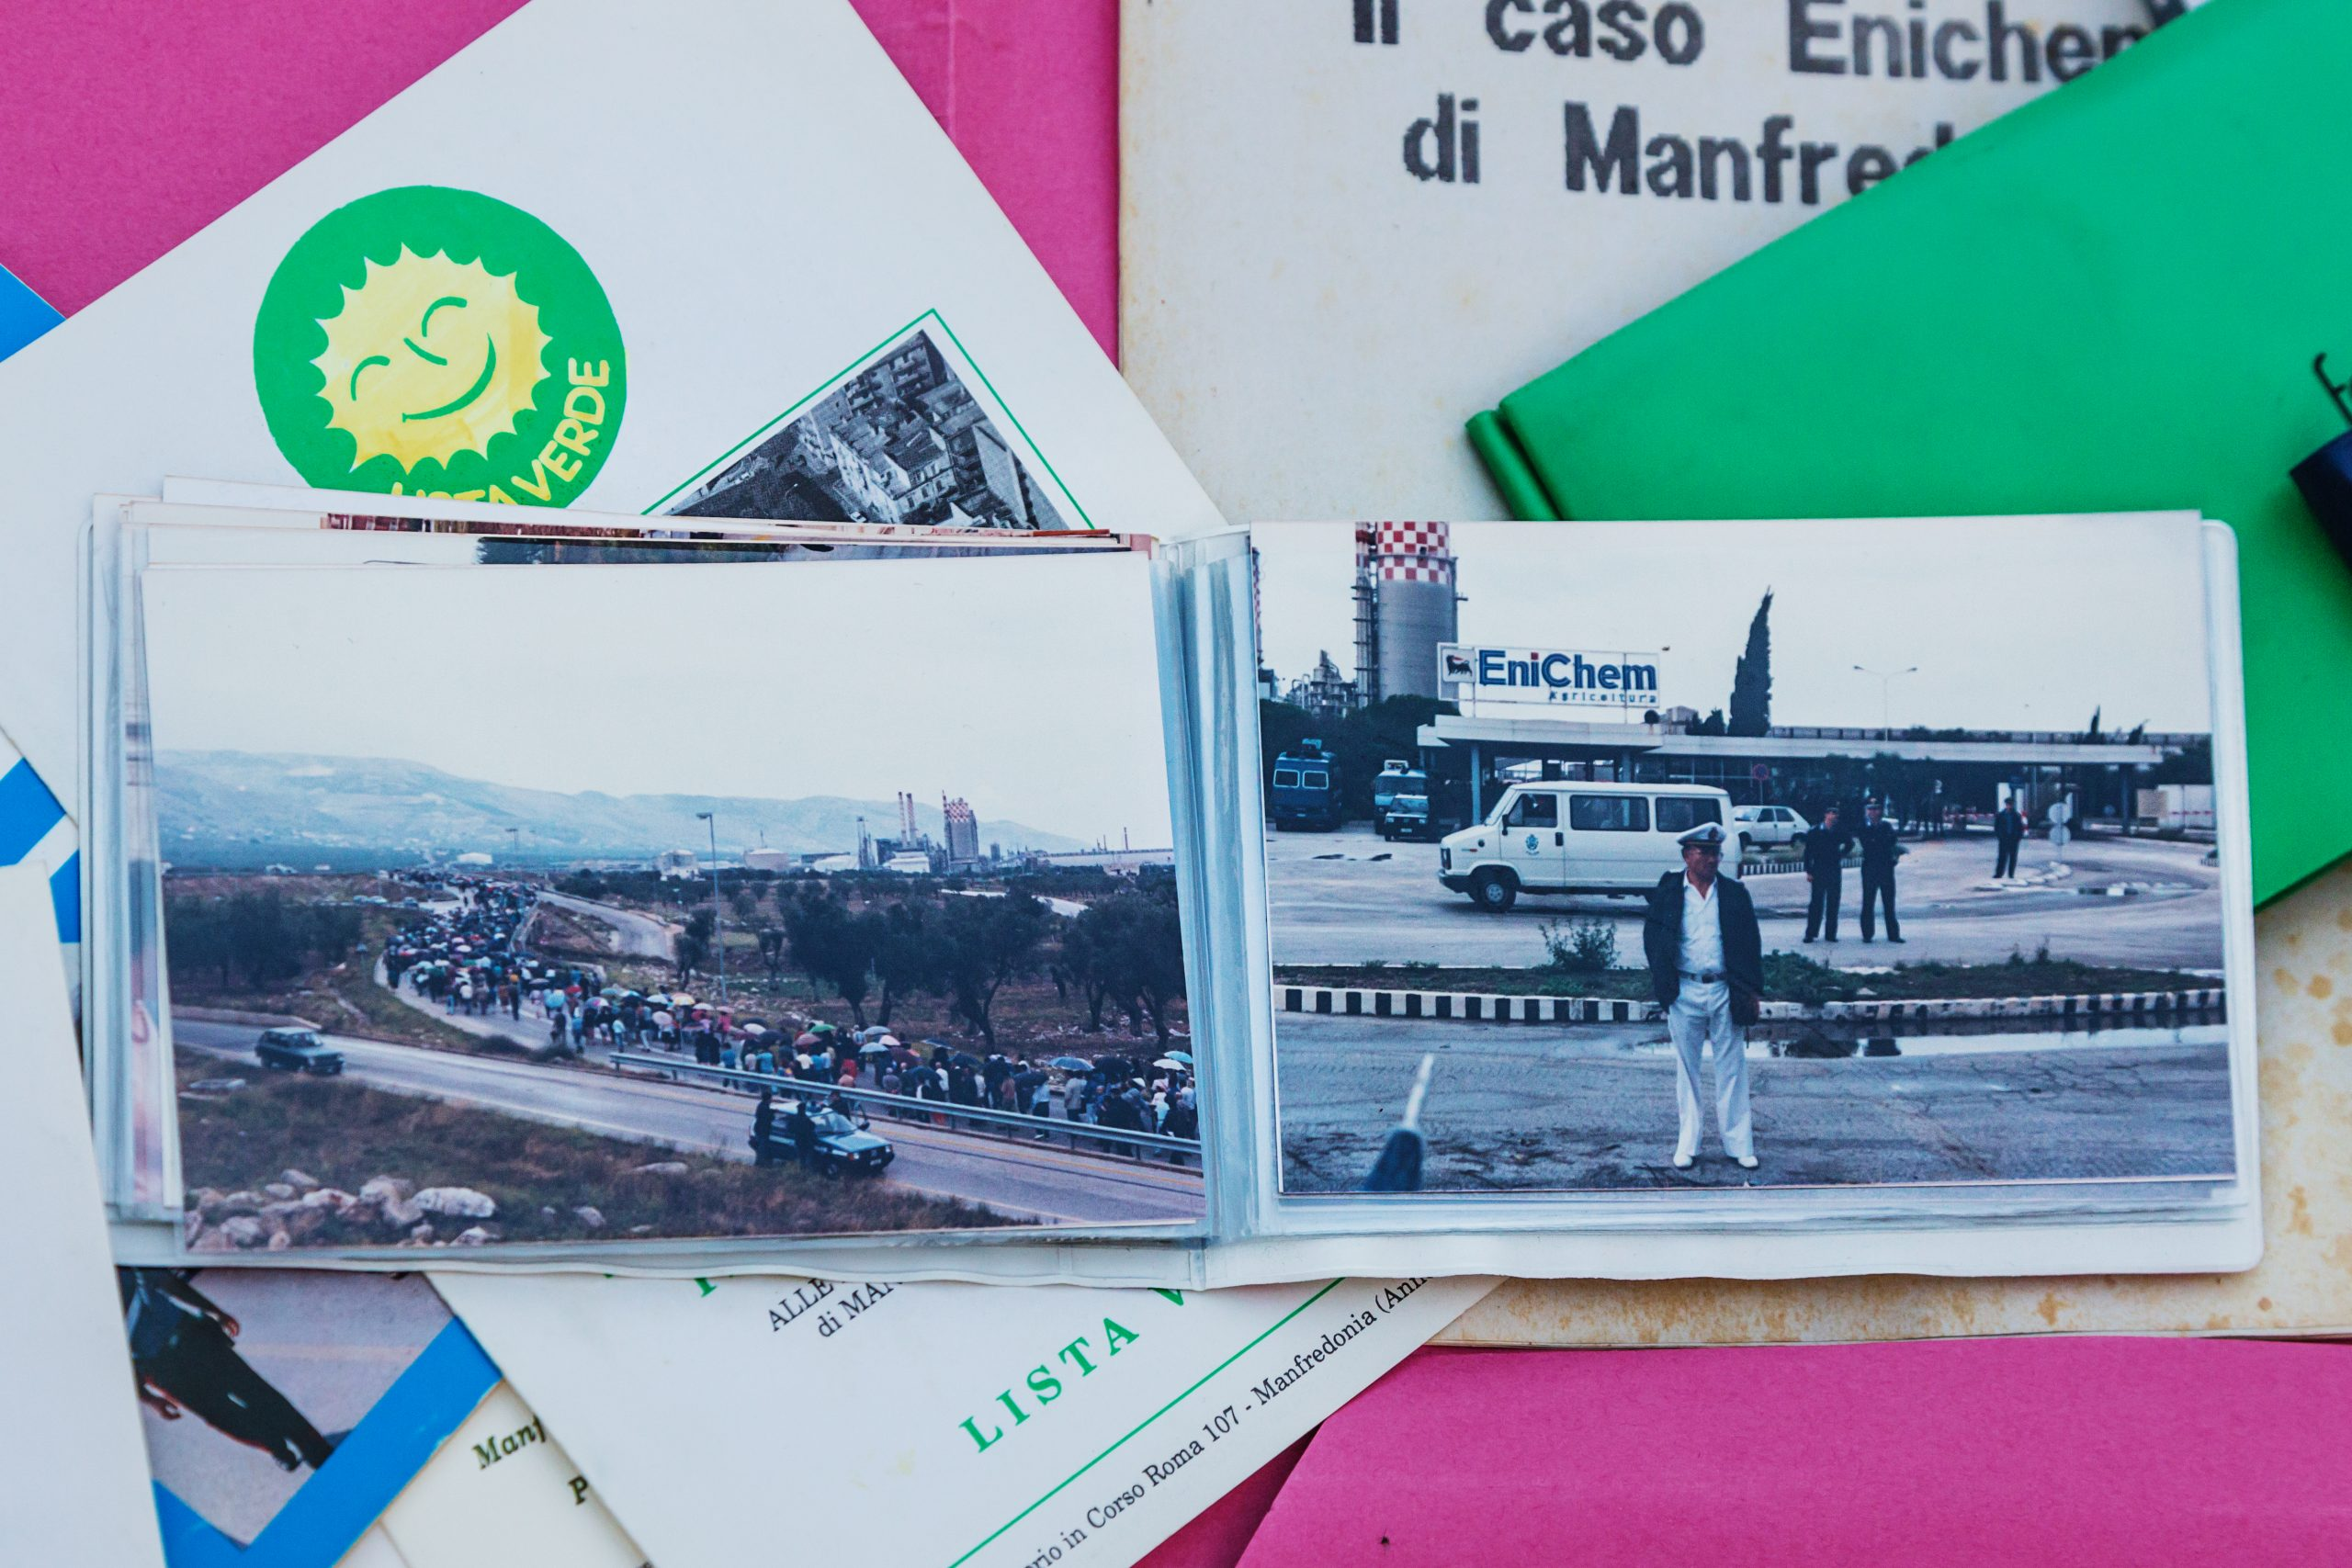 Historical photos by Mimmo Guerra. LEFT: The protest marches towards the EniChem complex. RIGHT: The petrochemical plant, now demolished.